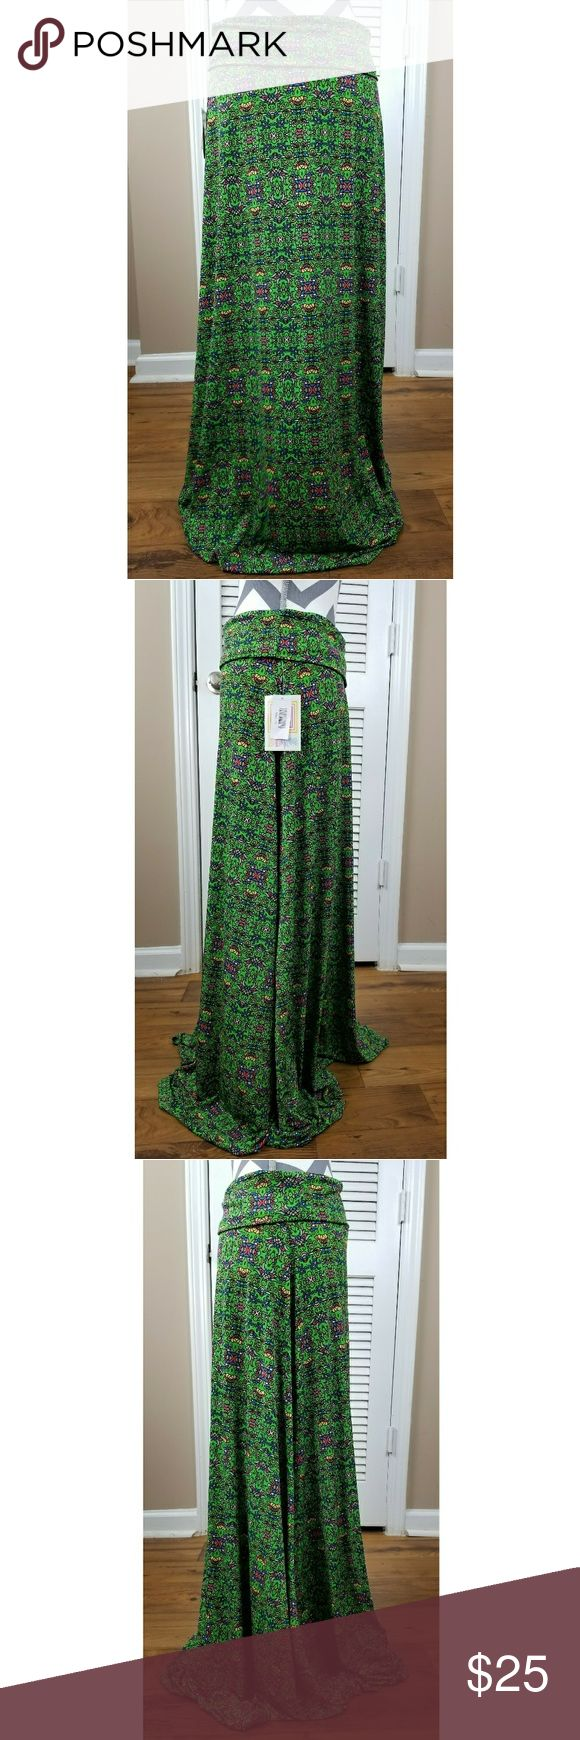 LulaRoe Green Aztec Printed Maxi Skirt Brand: LulaRoe Size: XS Color: Green Pattern: Aztec Geometric Print Materials: 95% Polyester 5% Spandex Condition:New with tags  Measurements  Waist: 32 (unstretched)  Hips: 42 Length: 41 LuLaRoe Skirts Maxi